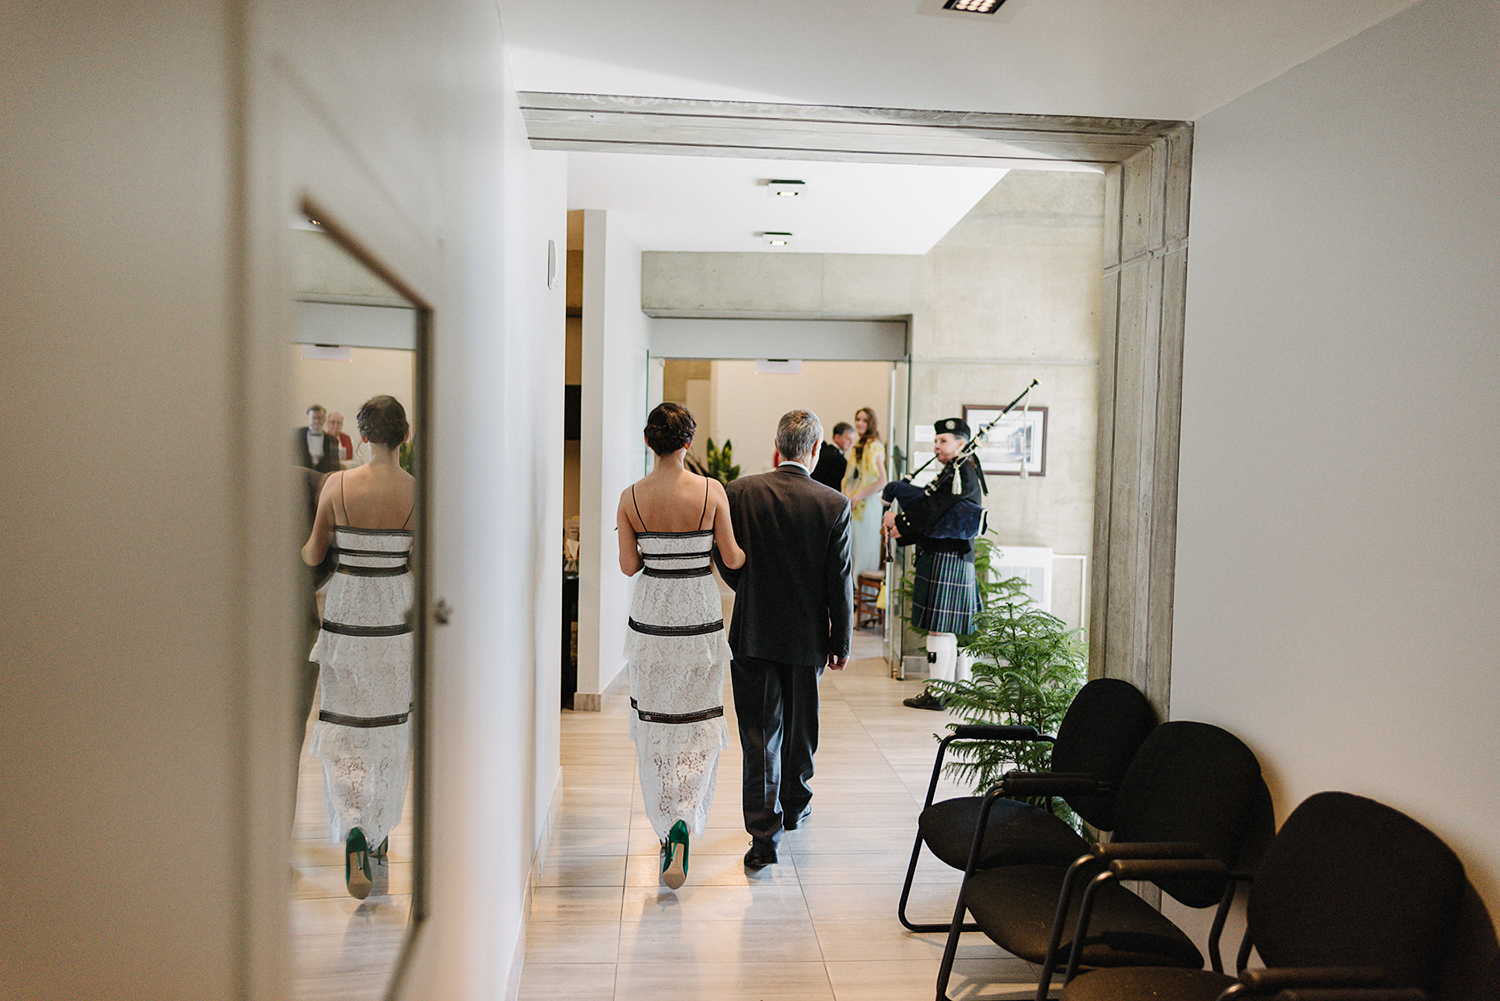 toronto-city-hall-elopement-wedding-old-city-hall-nathan-phillips-square-toronto-wedding-photographer-ryanne-hollies-photography-how-to-elope-in-toronto-ceremony.jpg